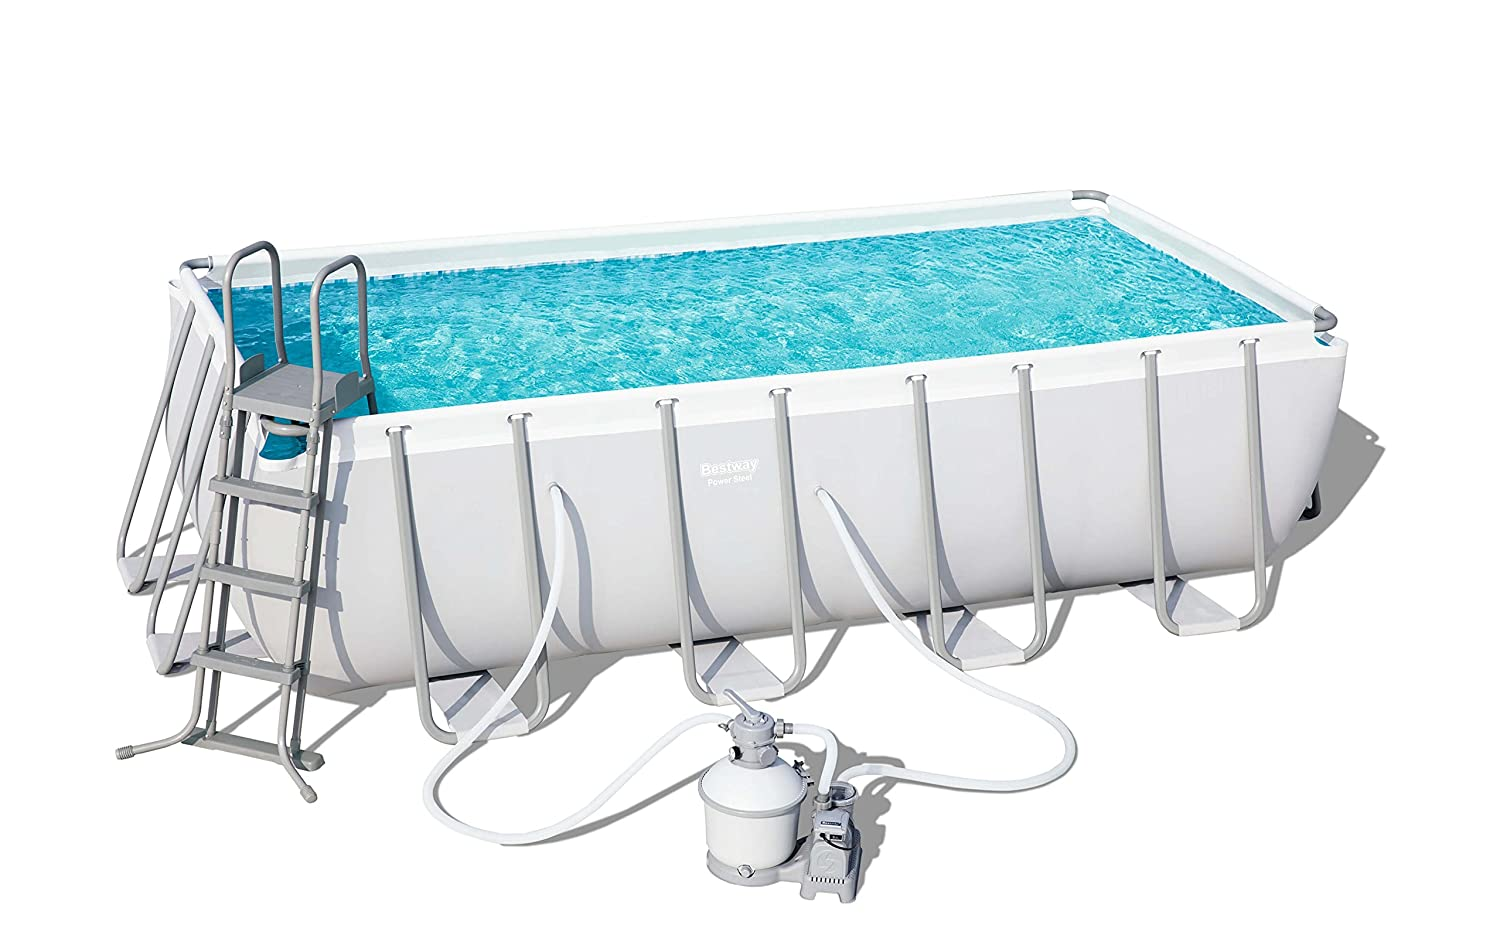 Piscina Desmontable Tubular Bestway Power Steel 488x244x122 cm: Amazon.es: Juguetes y juegos